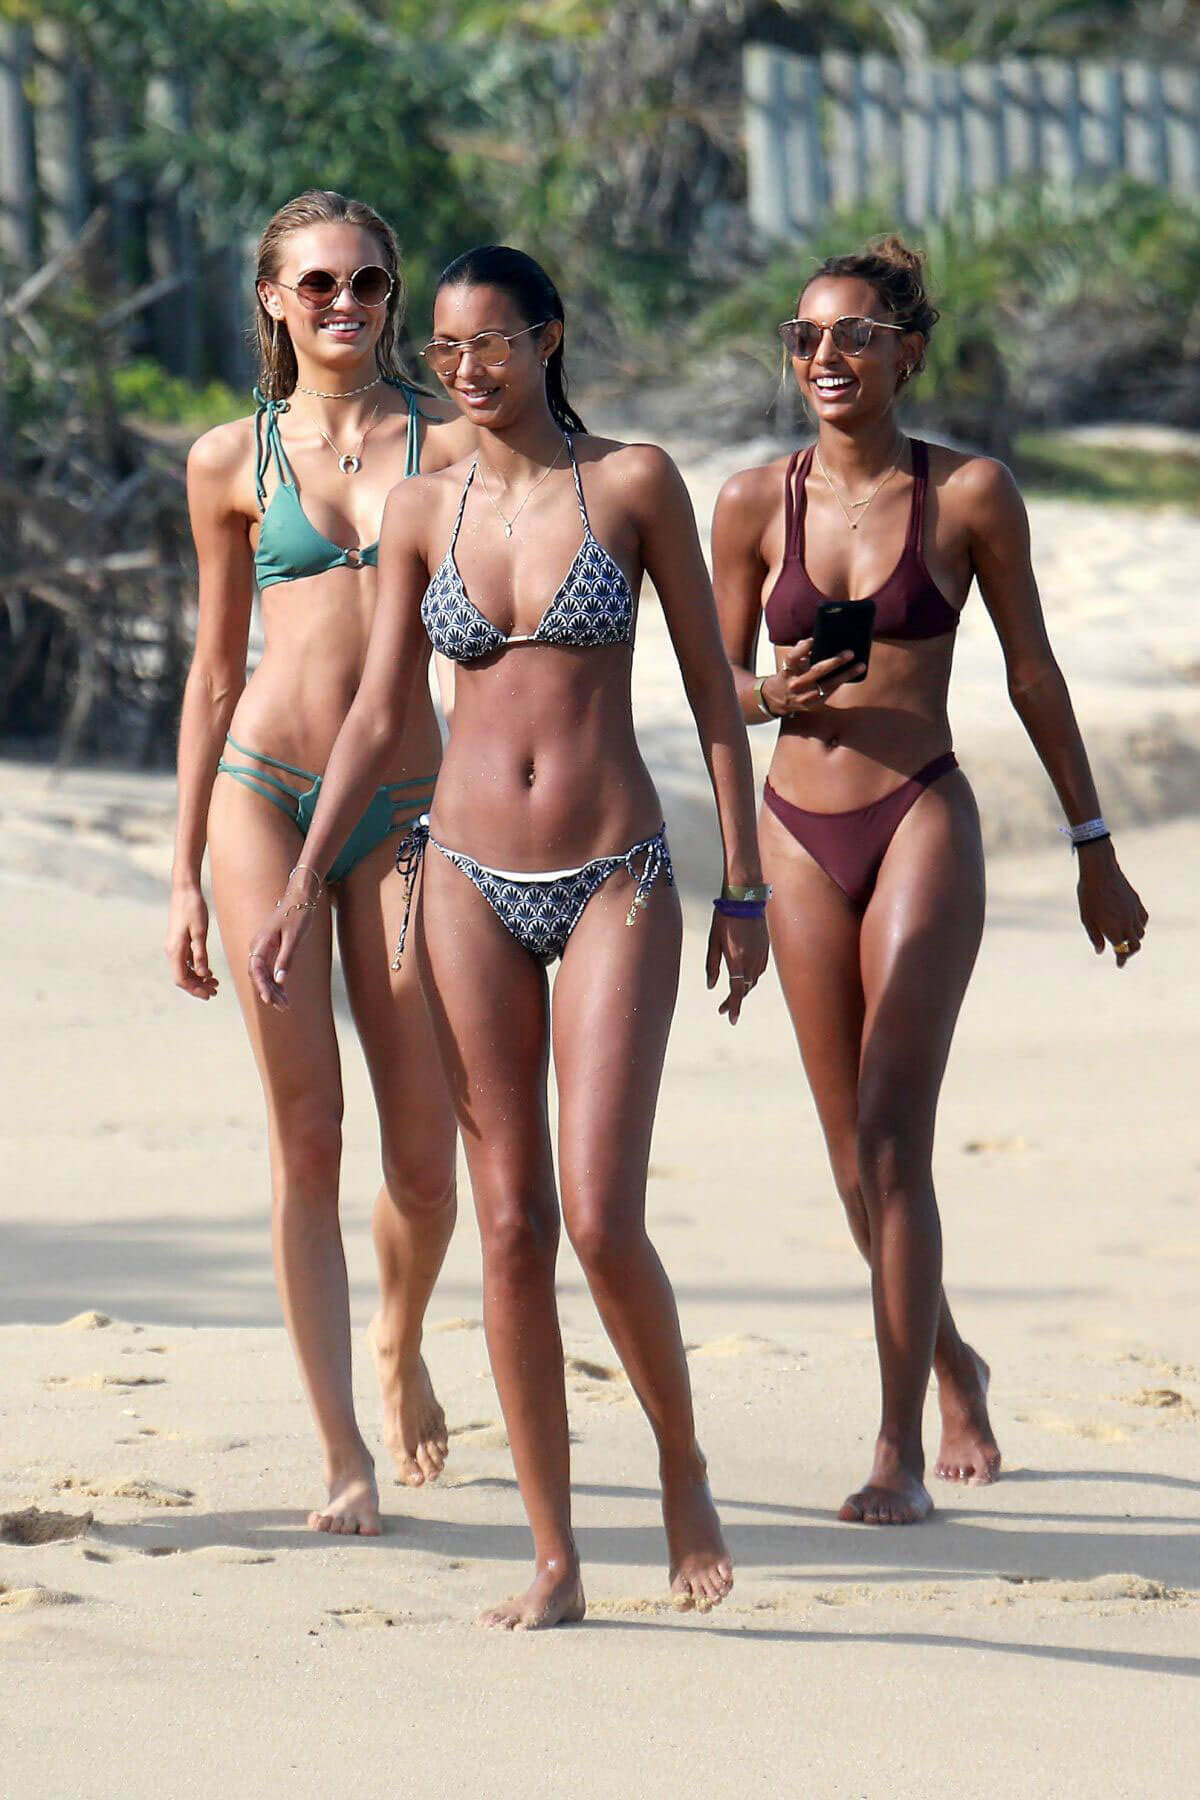 Lais Ribeiro, Romee Strijd and Jasmine Tookes in Bikinis at a Beach in Trancoso